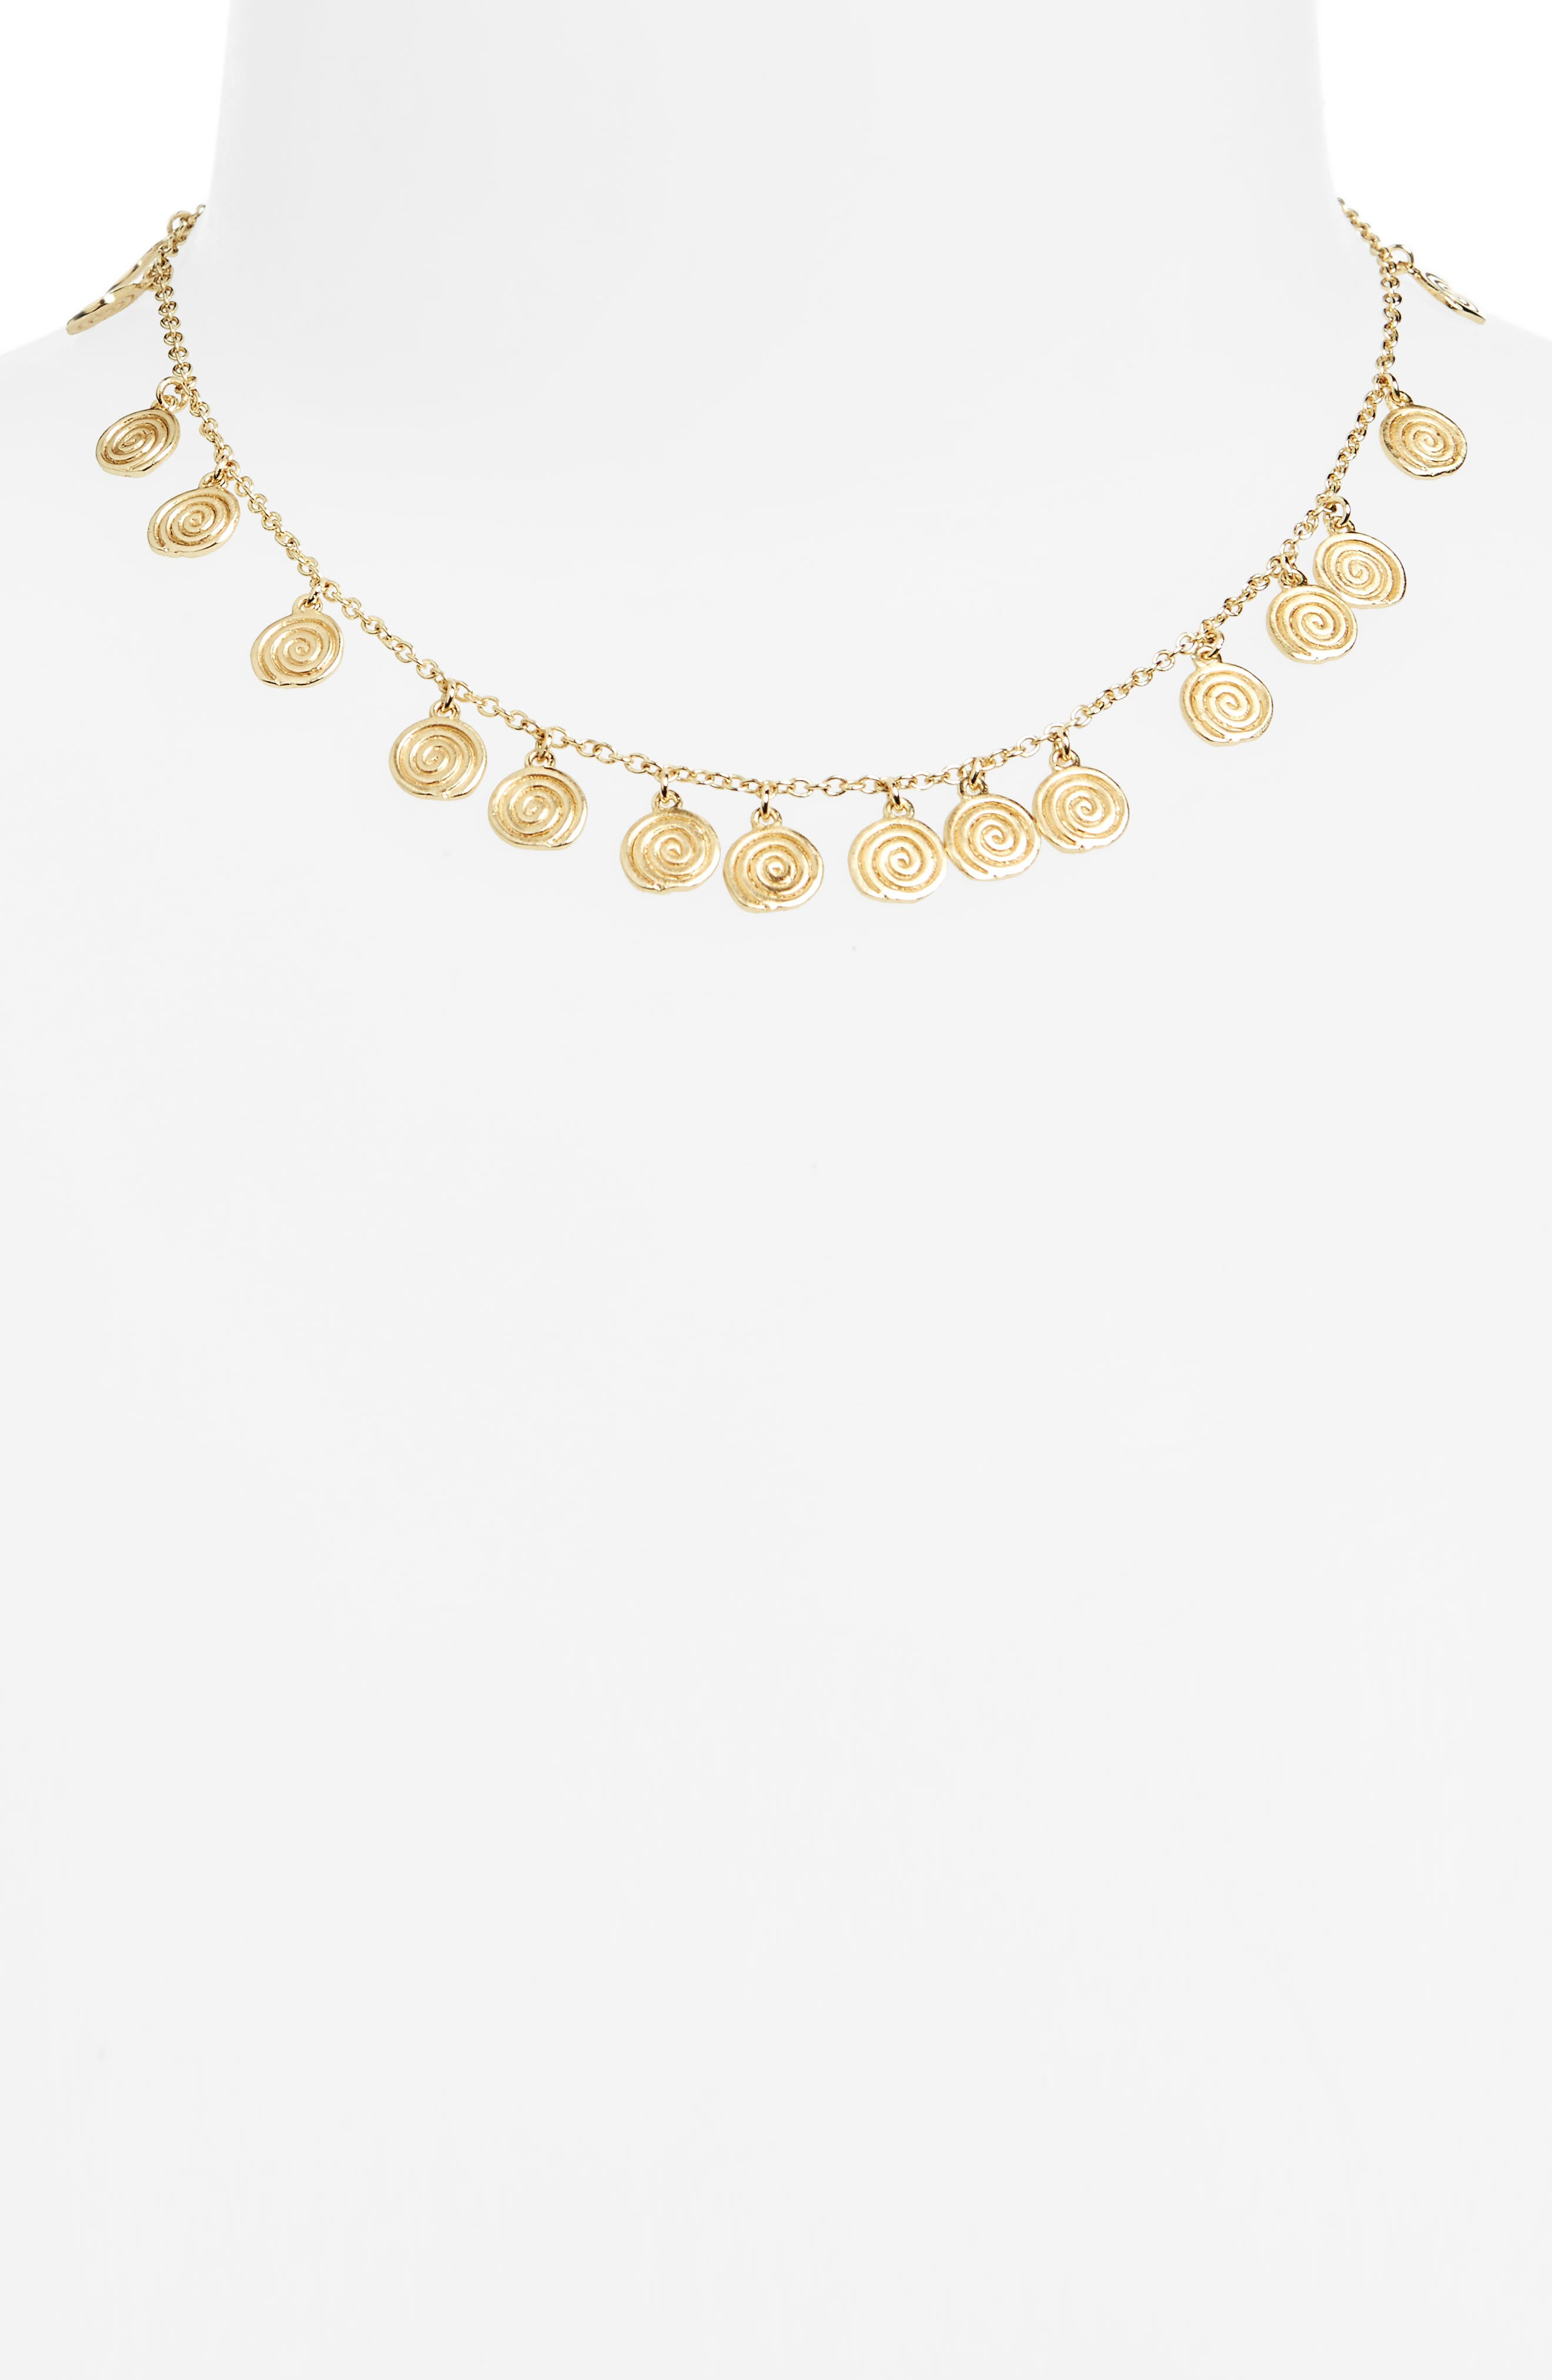 Sullivan - Reeves Charm Necklace,                         Main,                         color, Yellow Gold